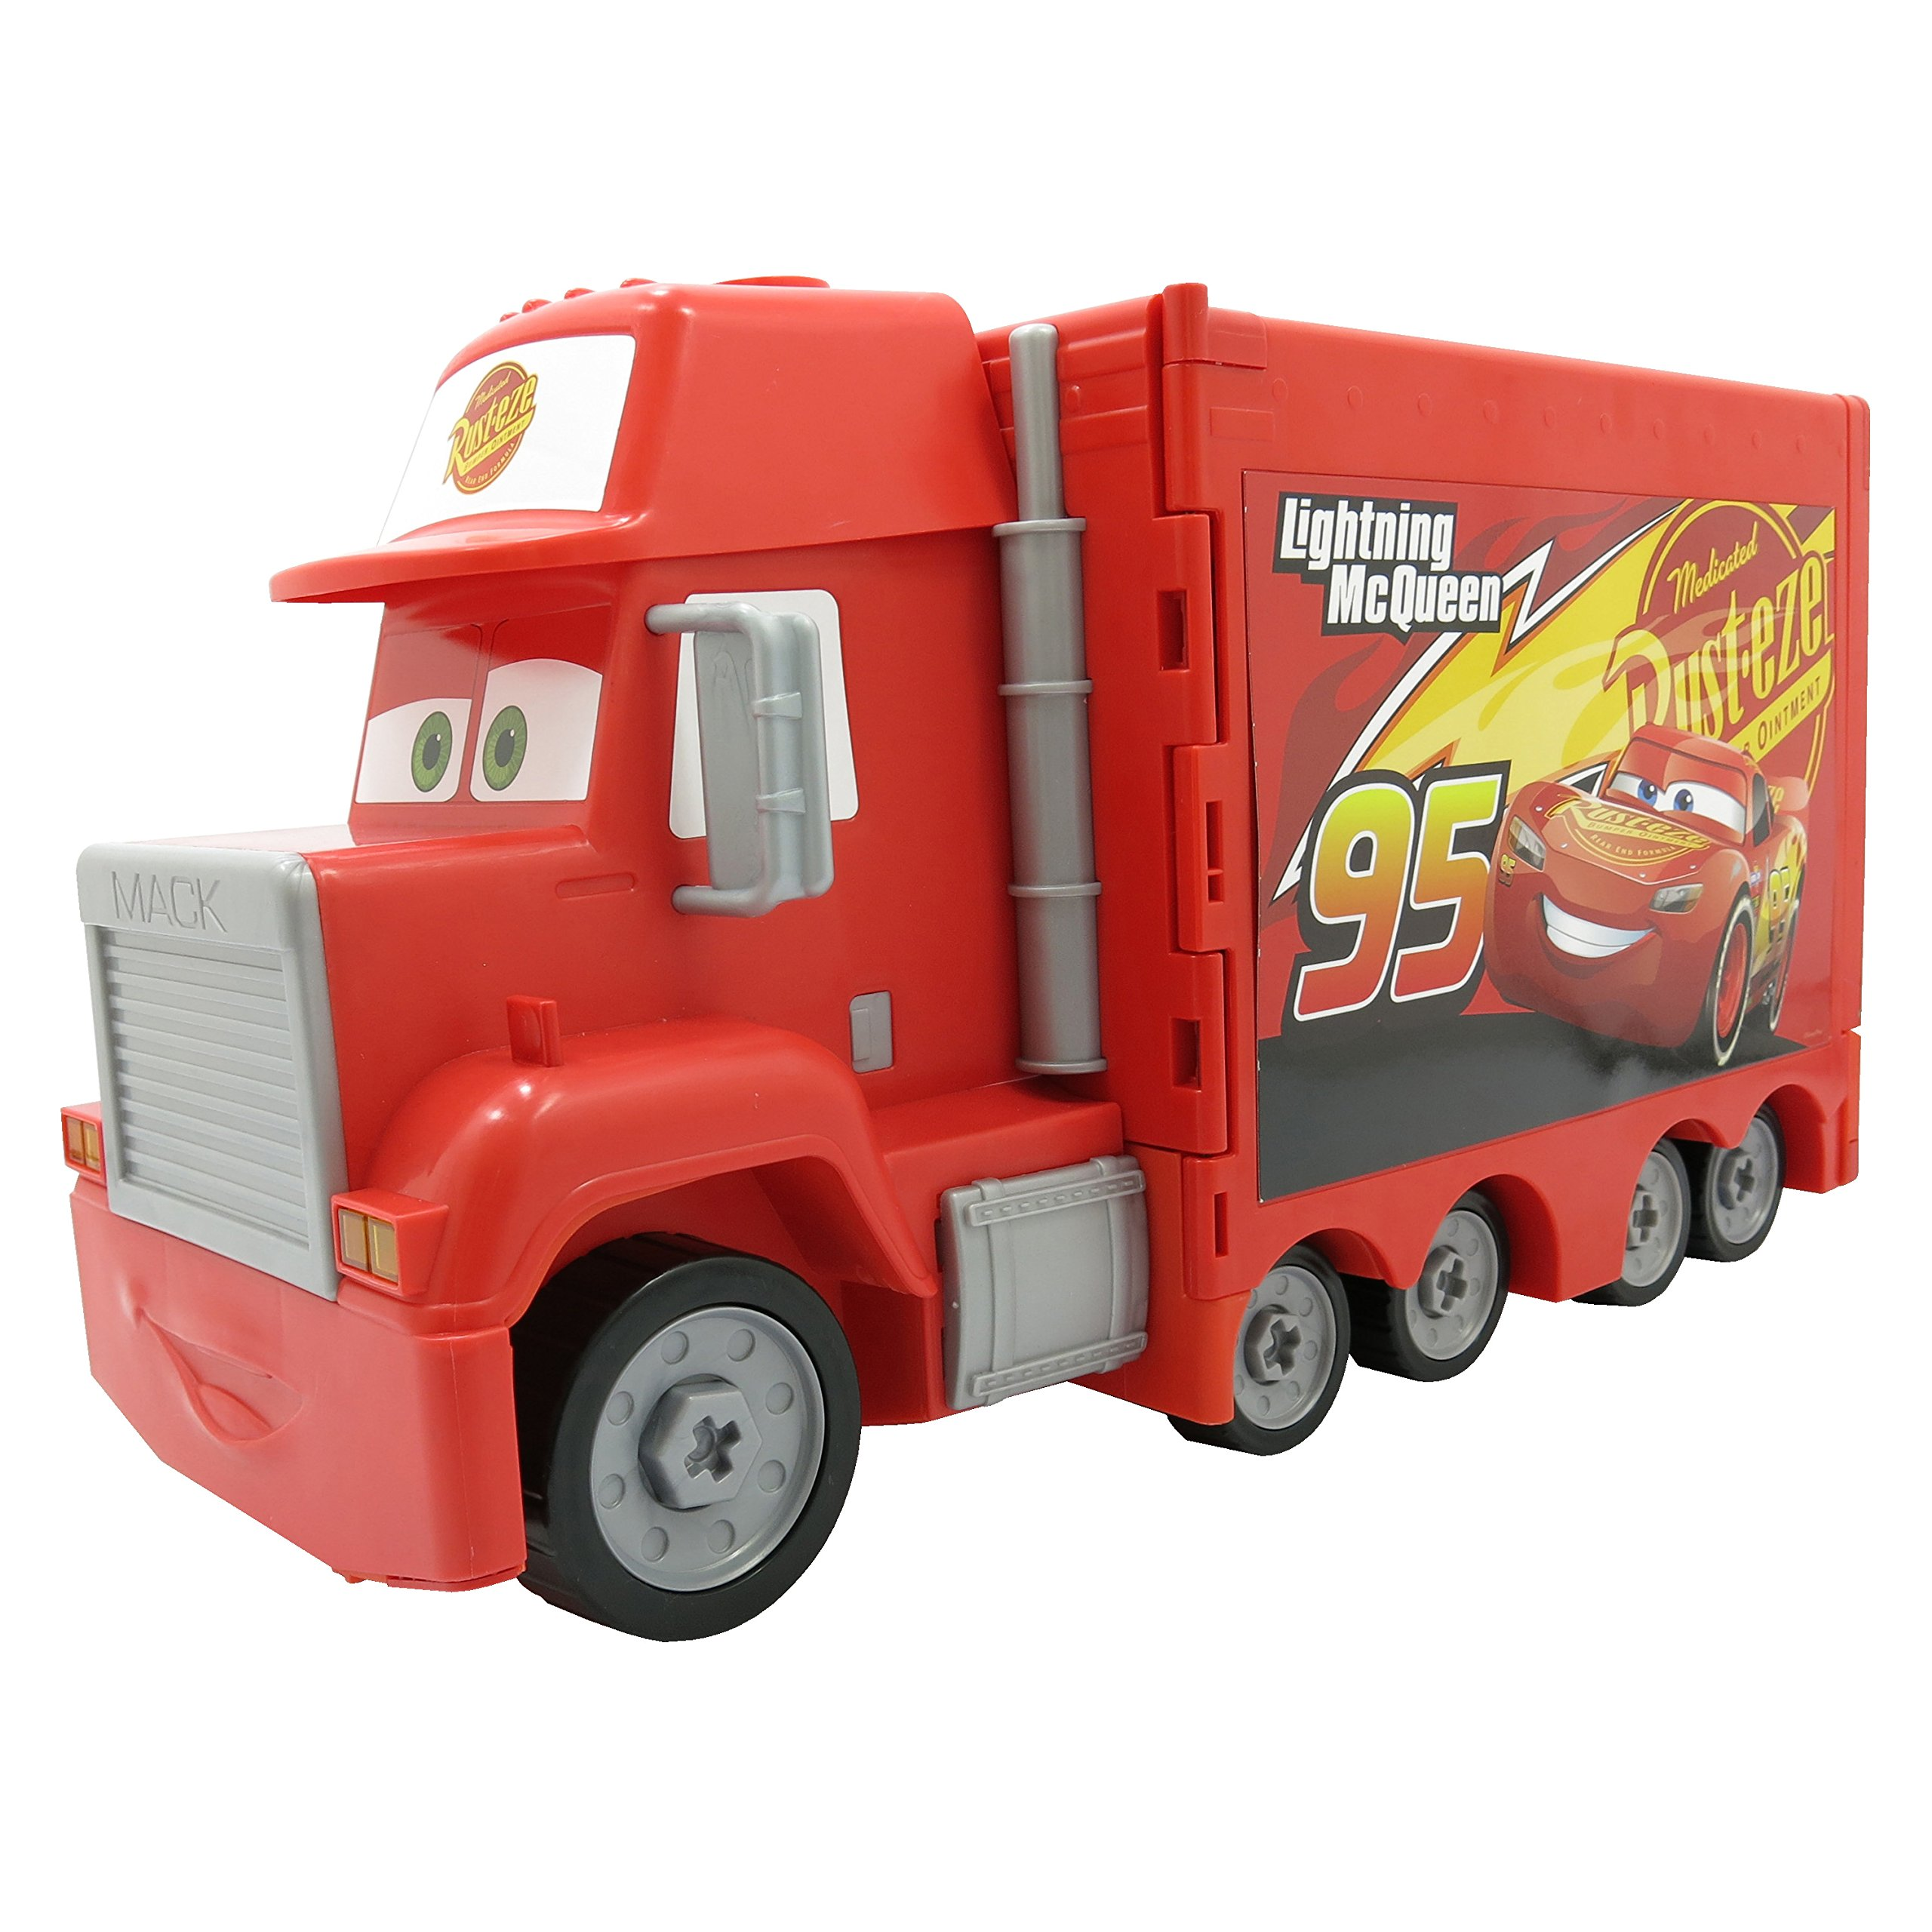 Cars 3 Macks Mobile Tool Center by Cars 3 (Image #7)